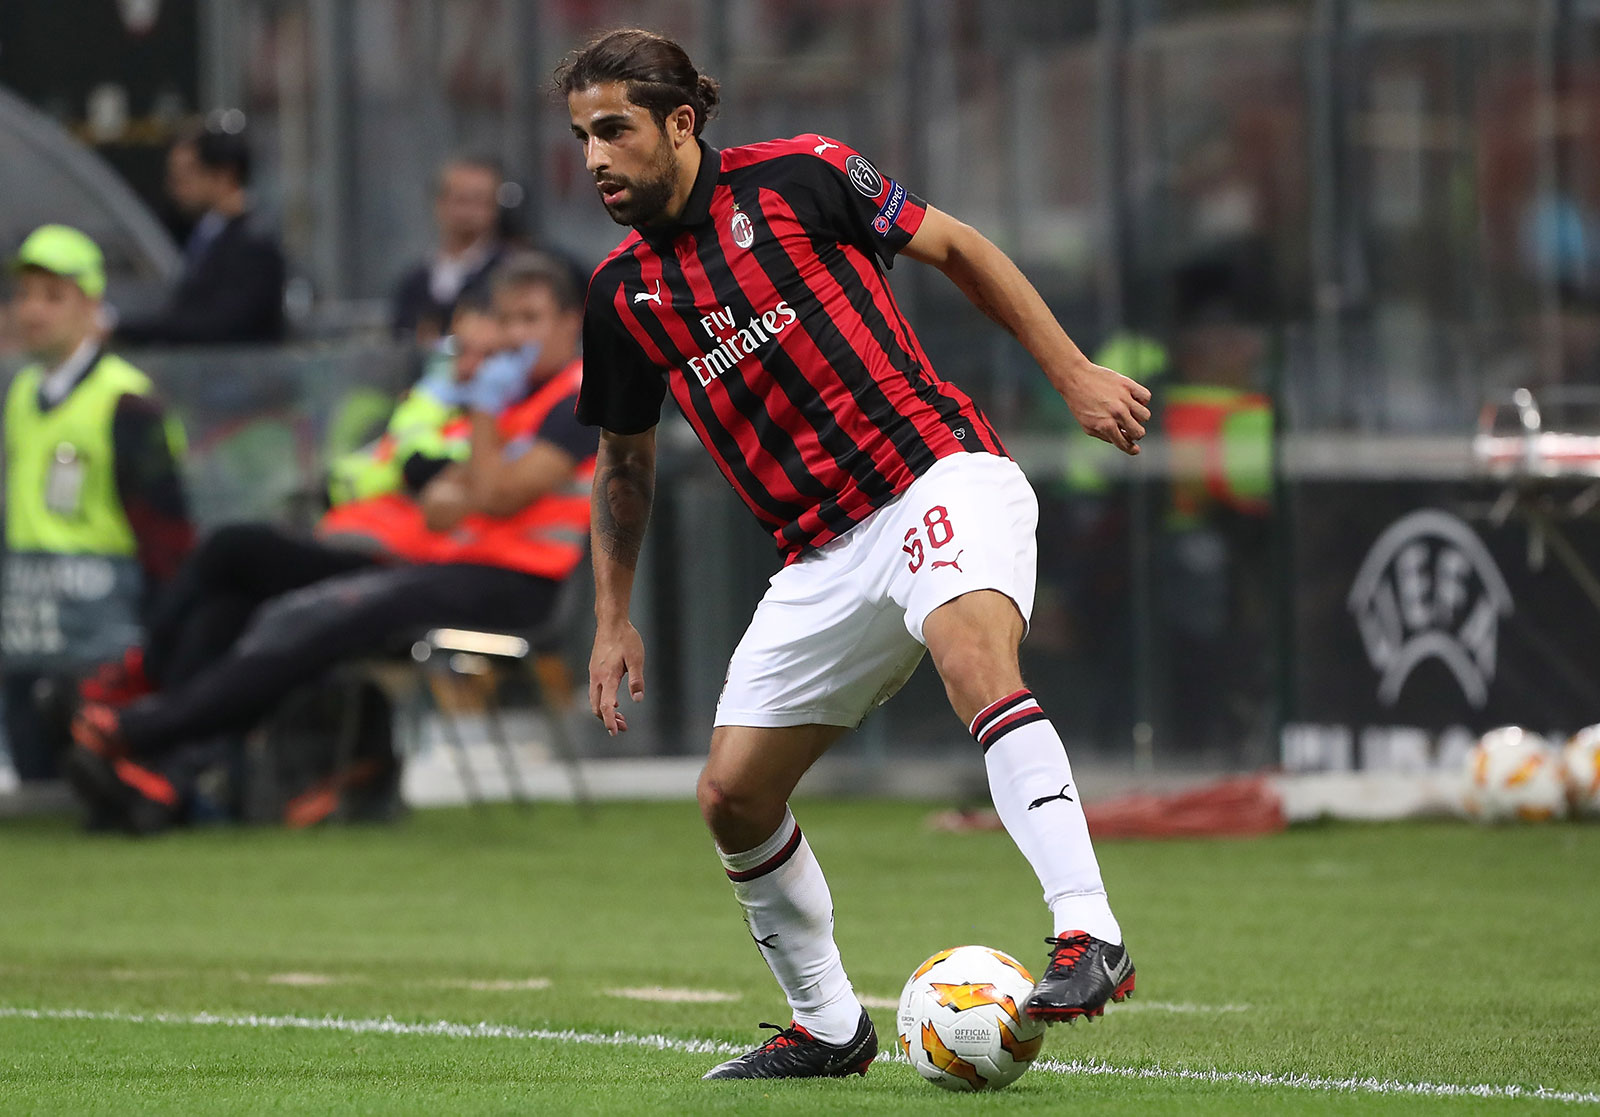 Riccardo Rodriguez during Milan-Olympiacos at Stadio San Siro on October 4, 2018. (Photo by Marco Luzzani/Getty Images)